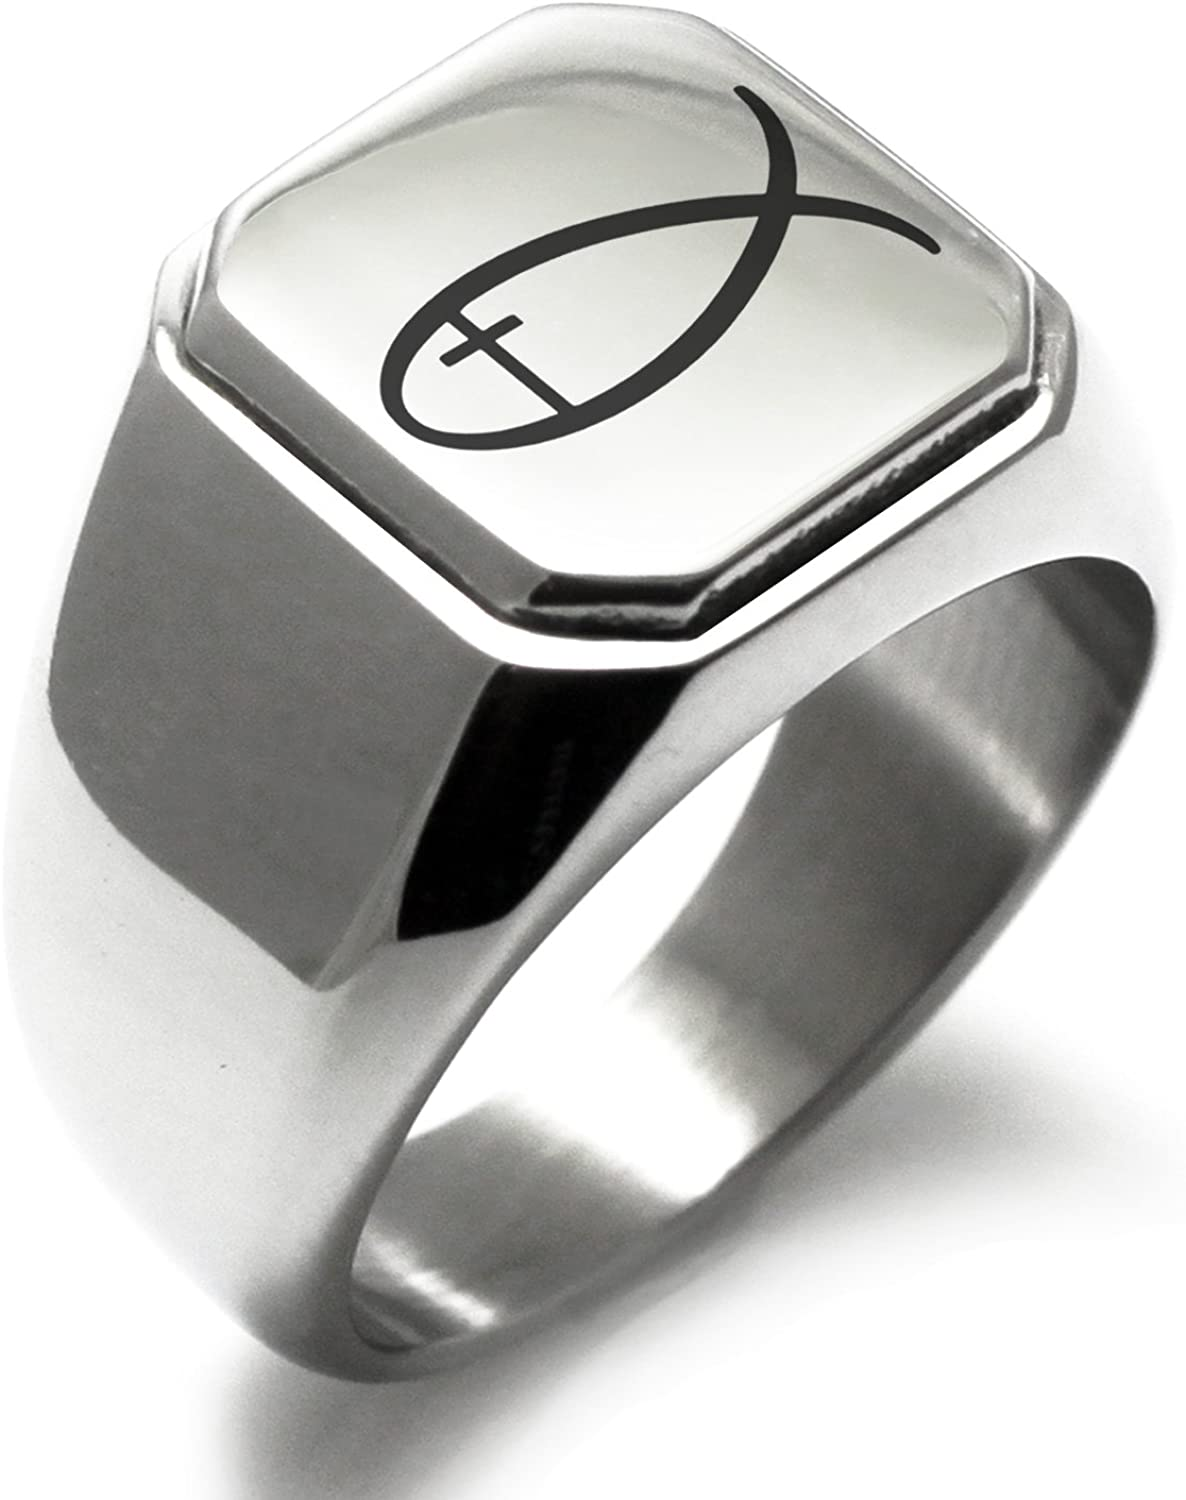 Stainless Steel Fish with Jesus Ichthus Cross Square Flat Top Biker Style Polished Ring